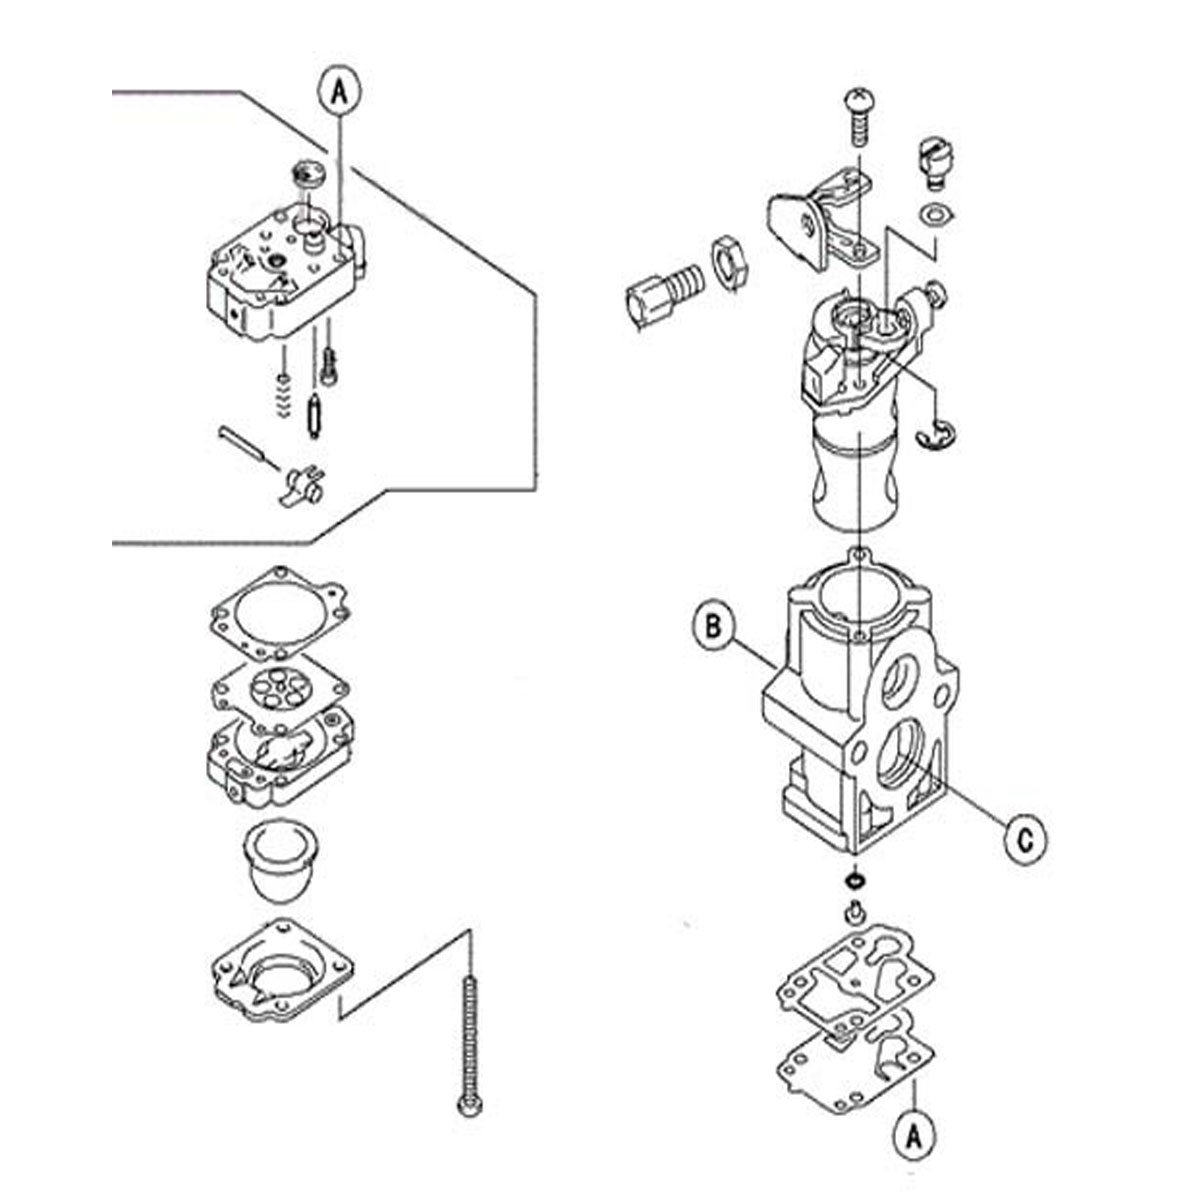 Lawn Boy Mower Carburetor Parts Diagram moreover Honda Ruckus Motor Diagram in addition E Stereo Wiring Diagram Schemes furthermore 12 Hp Teseh Engine Diagram Html together with Honda Ruckus Wiring Diagram. on teseh engine wiring diagram